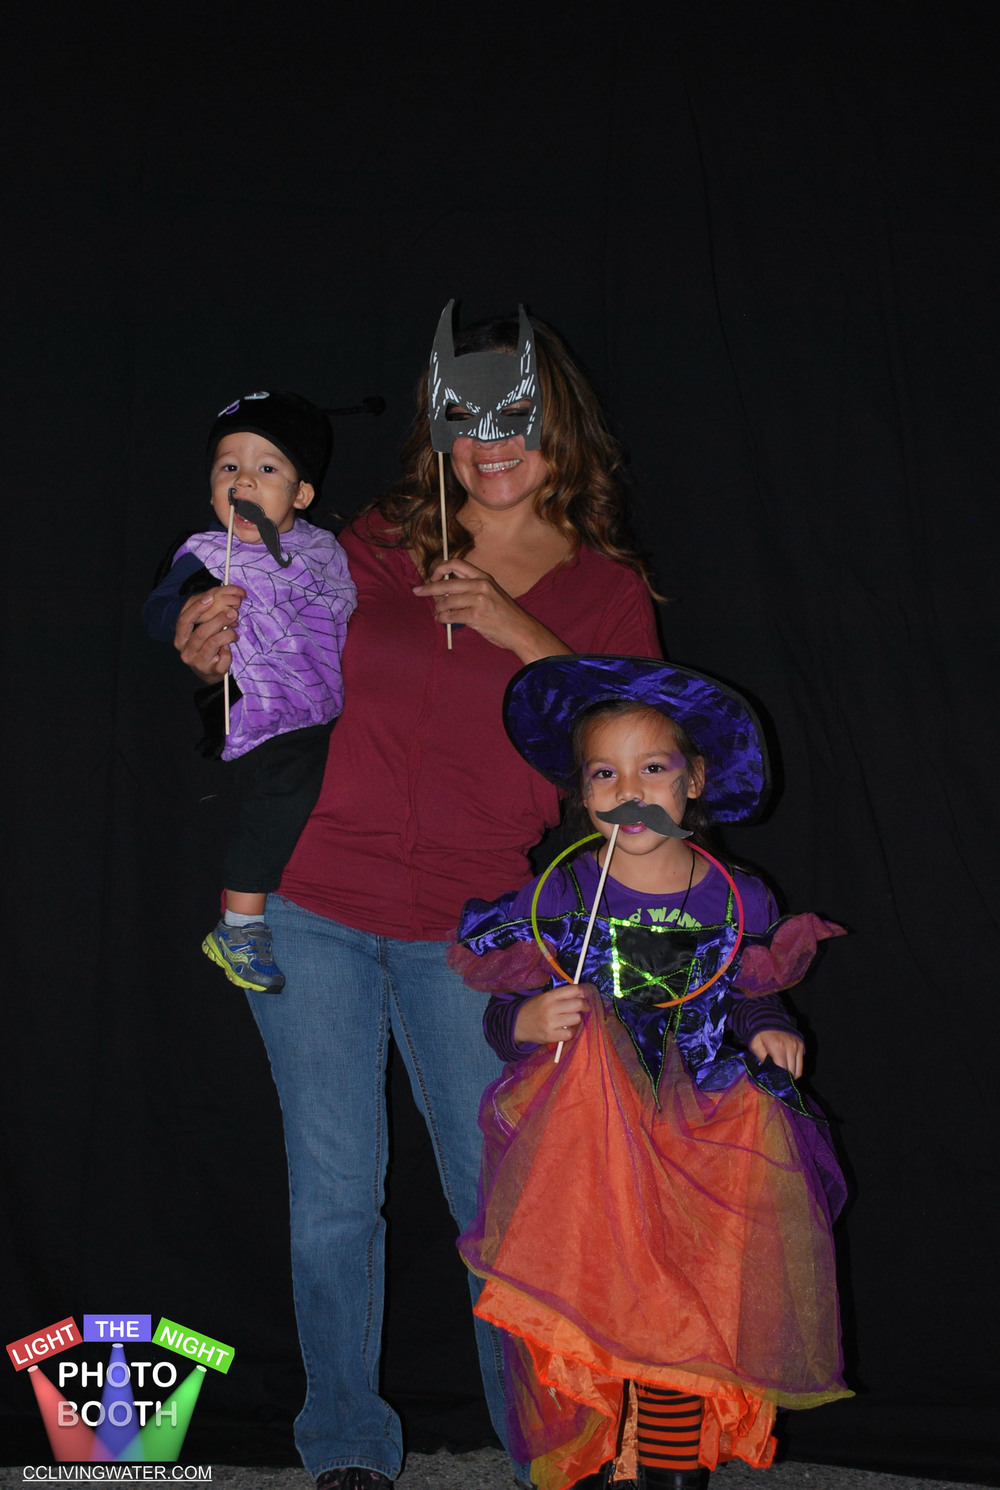 2014-10 - Light The Night Photo Booth (117) copy.jpg